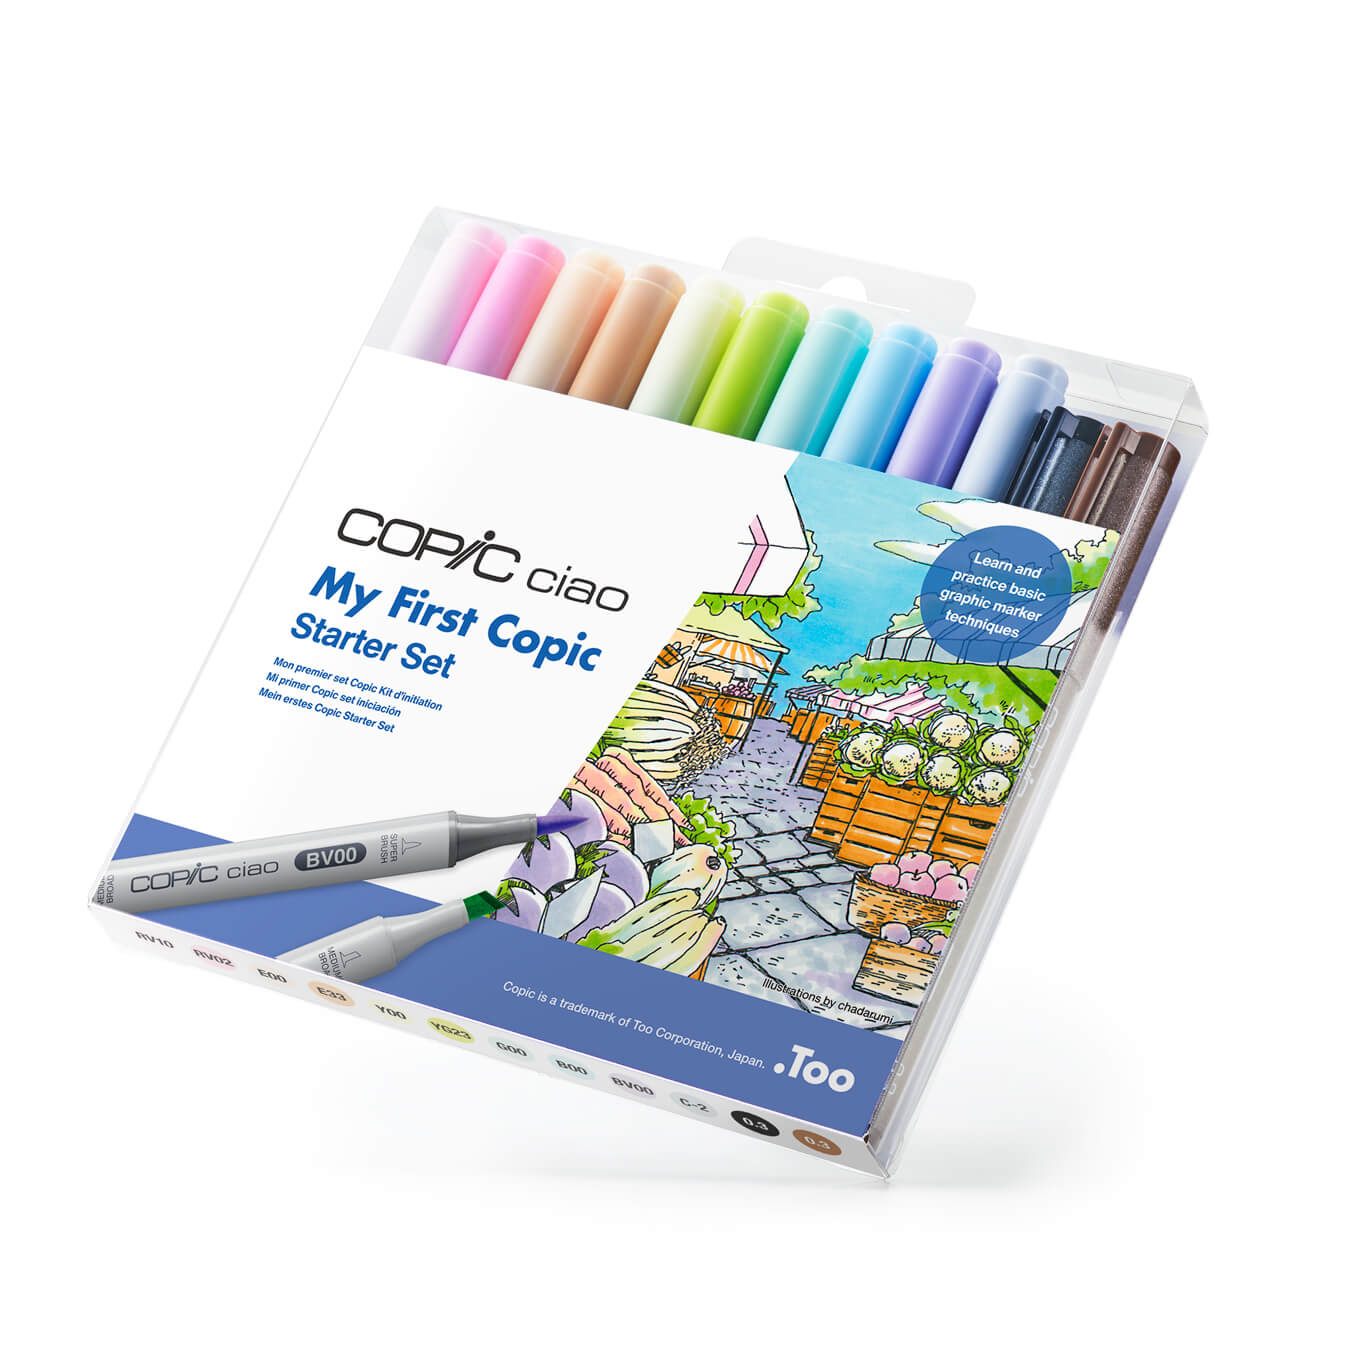 My First Copic Starter Set Package image